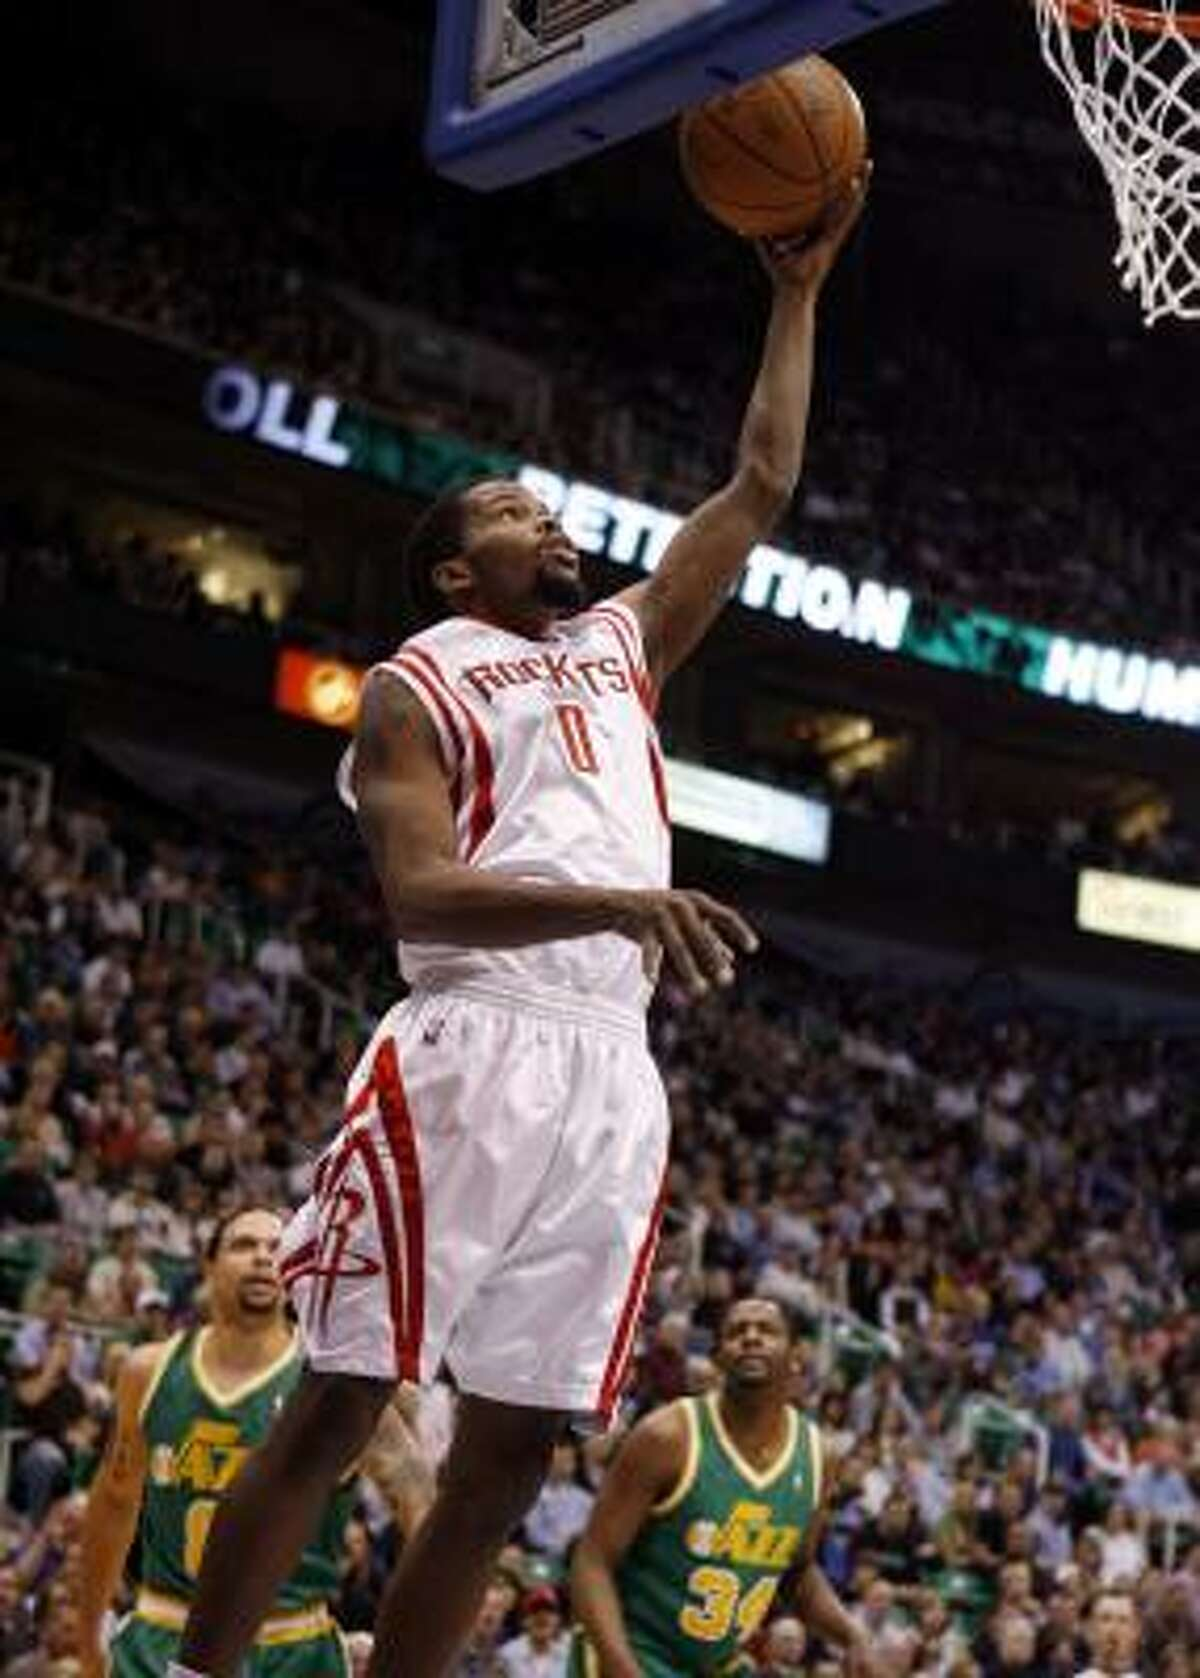 Rockets guard Aaron Brooks drops in a layup during the first half.